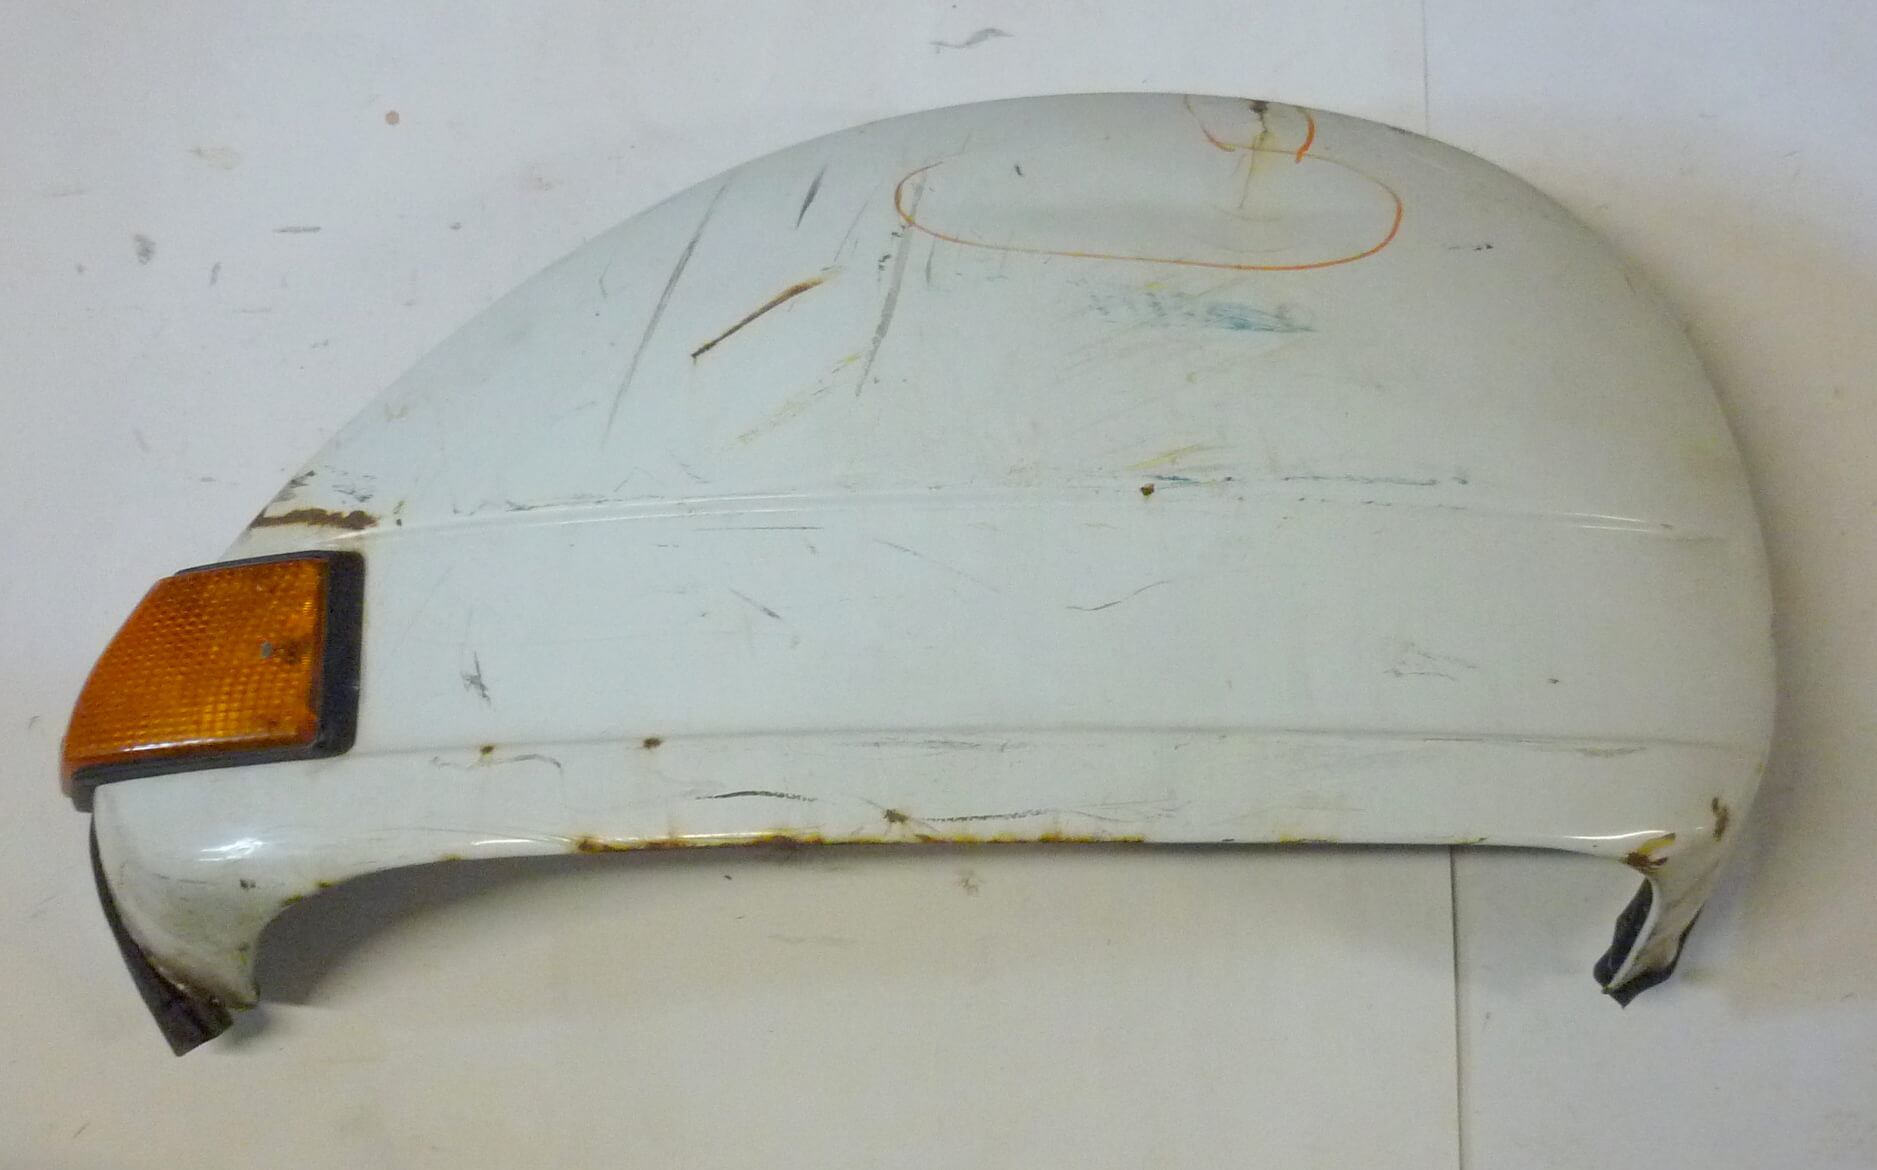 Engine cowl, internal mechanism, white, Vespa PX, used